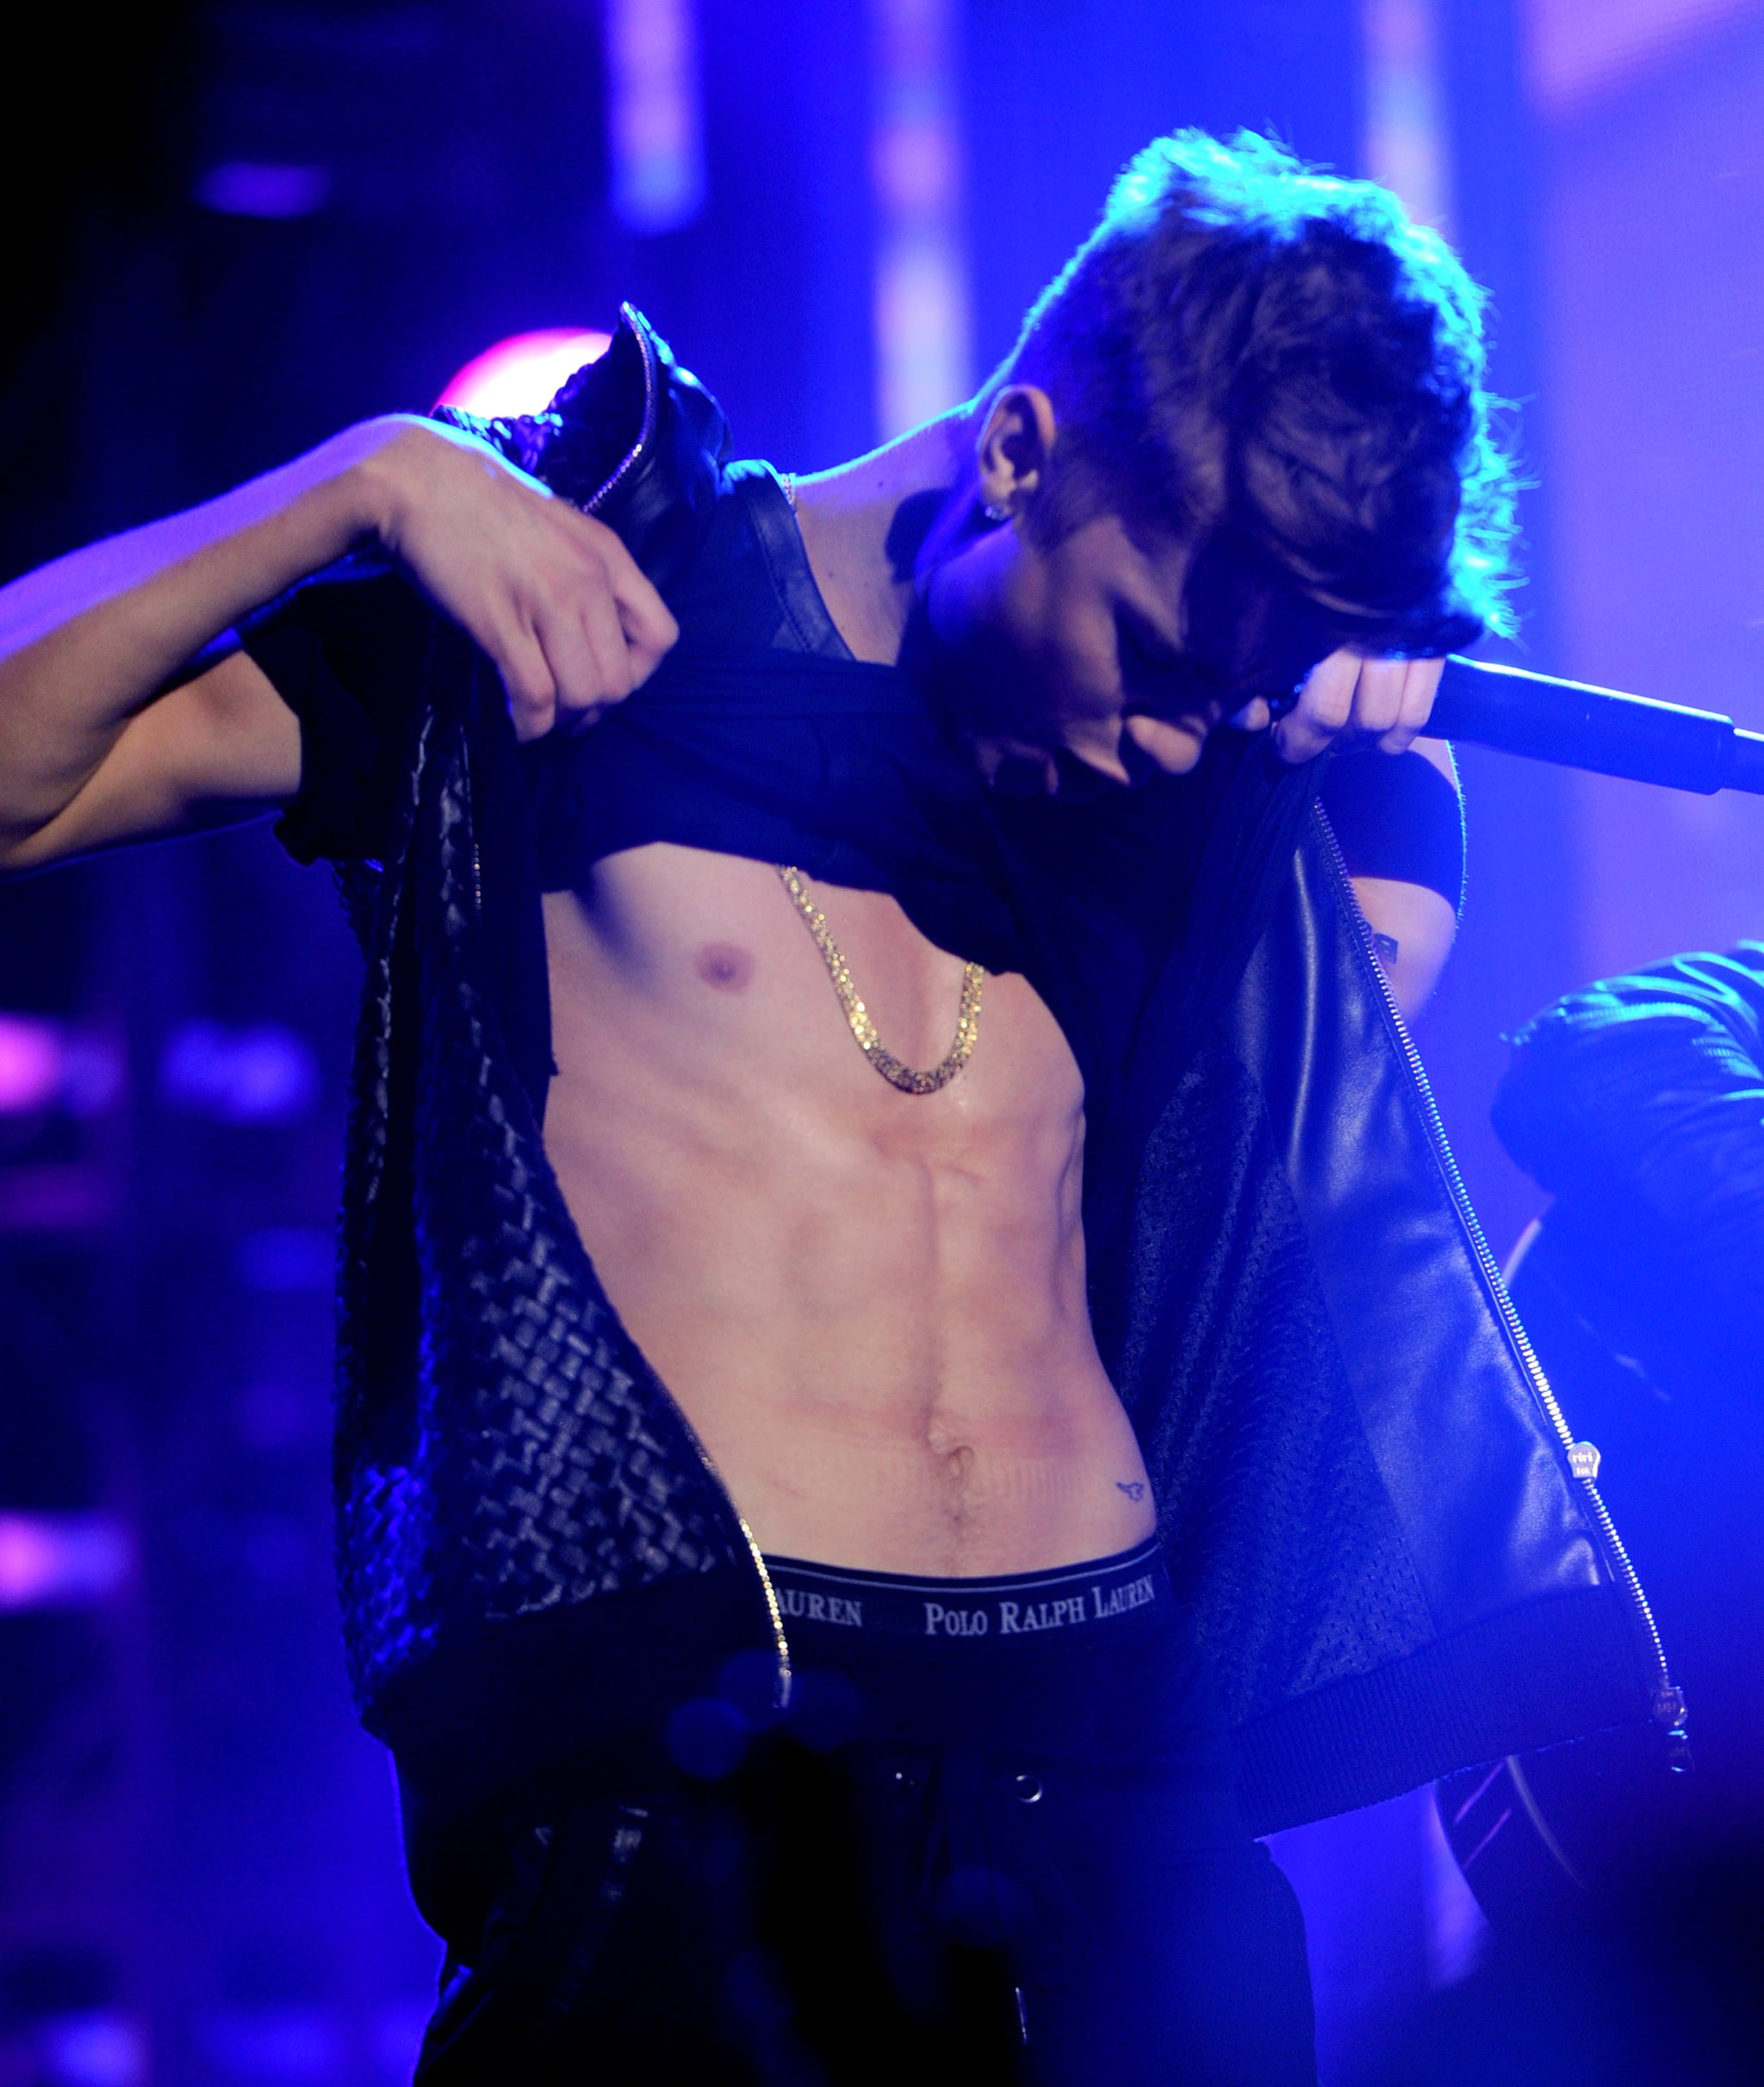 Justin Bieber showed his abs during his set for New Year's Rockin' Eve in NYC.